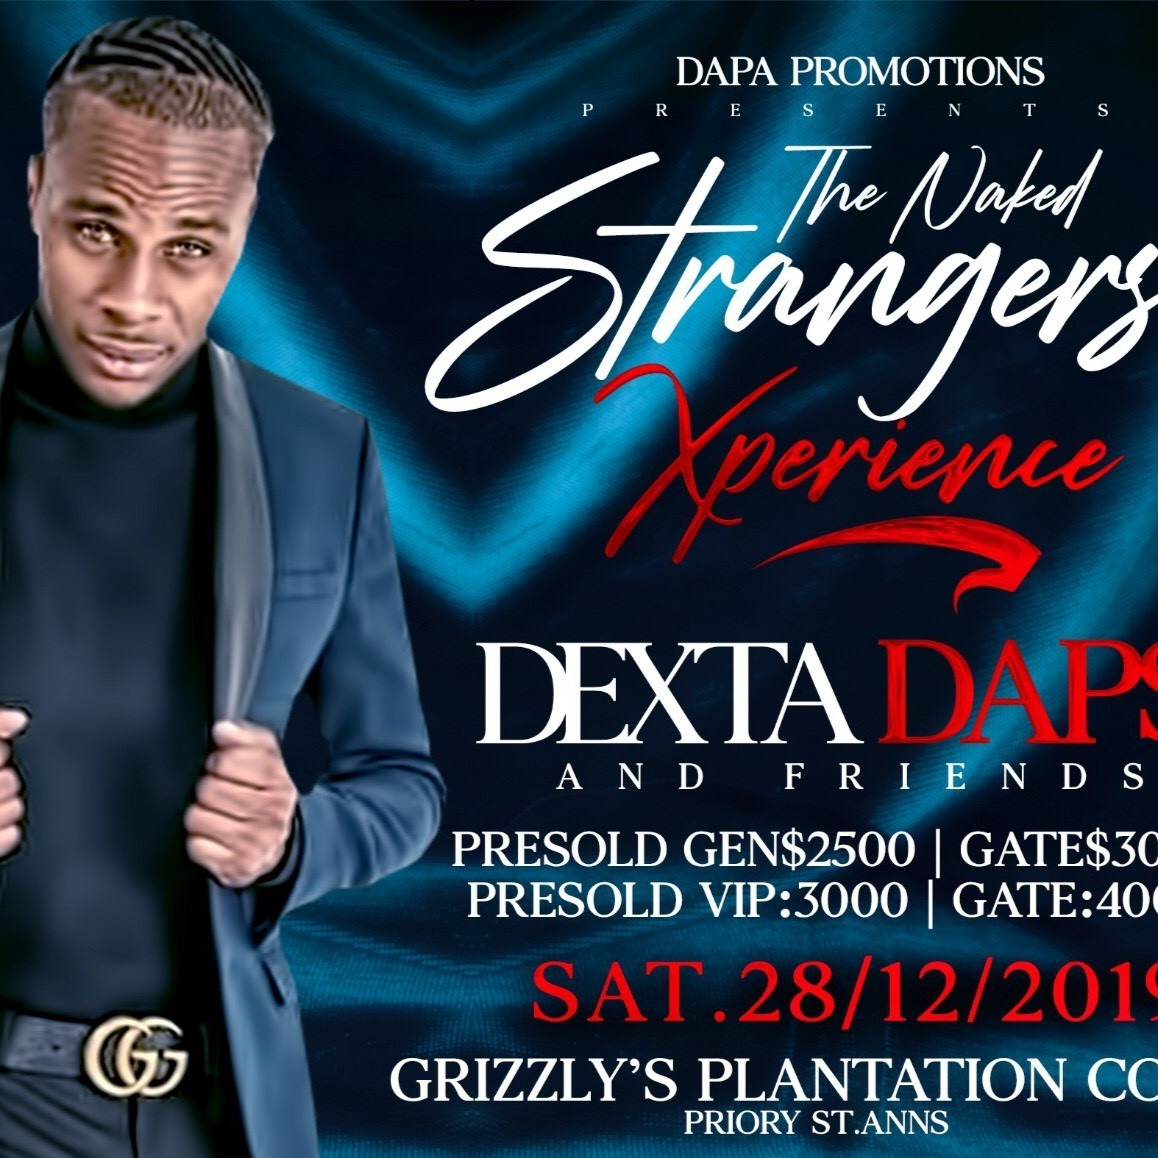 The Naked Strangers Xperience - Dexta Daps